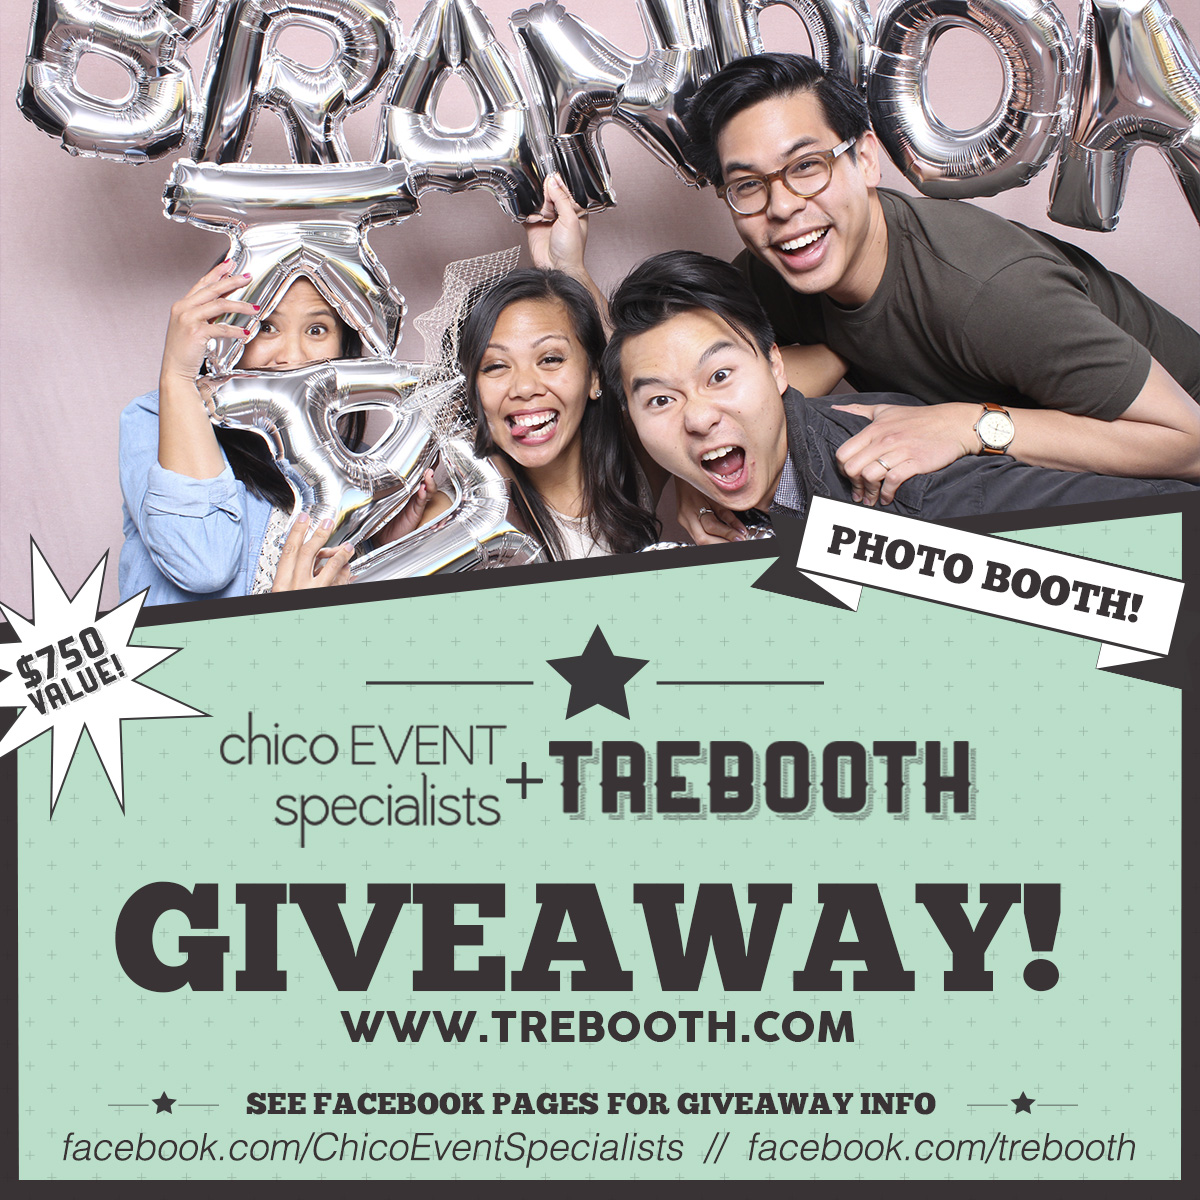 trebooth-chico-photo-booth-giveaway